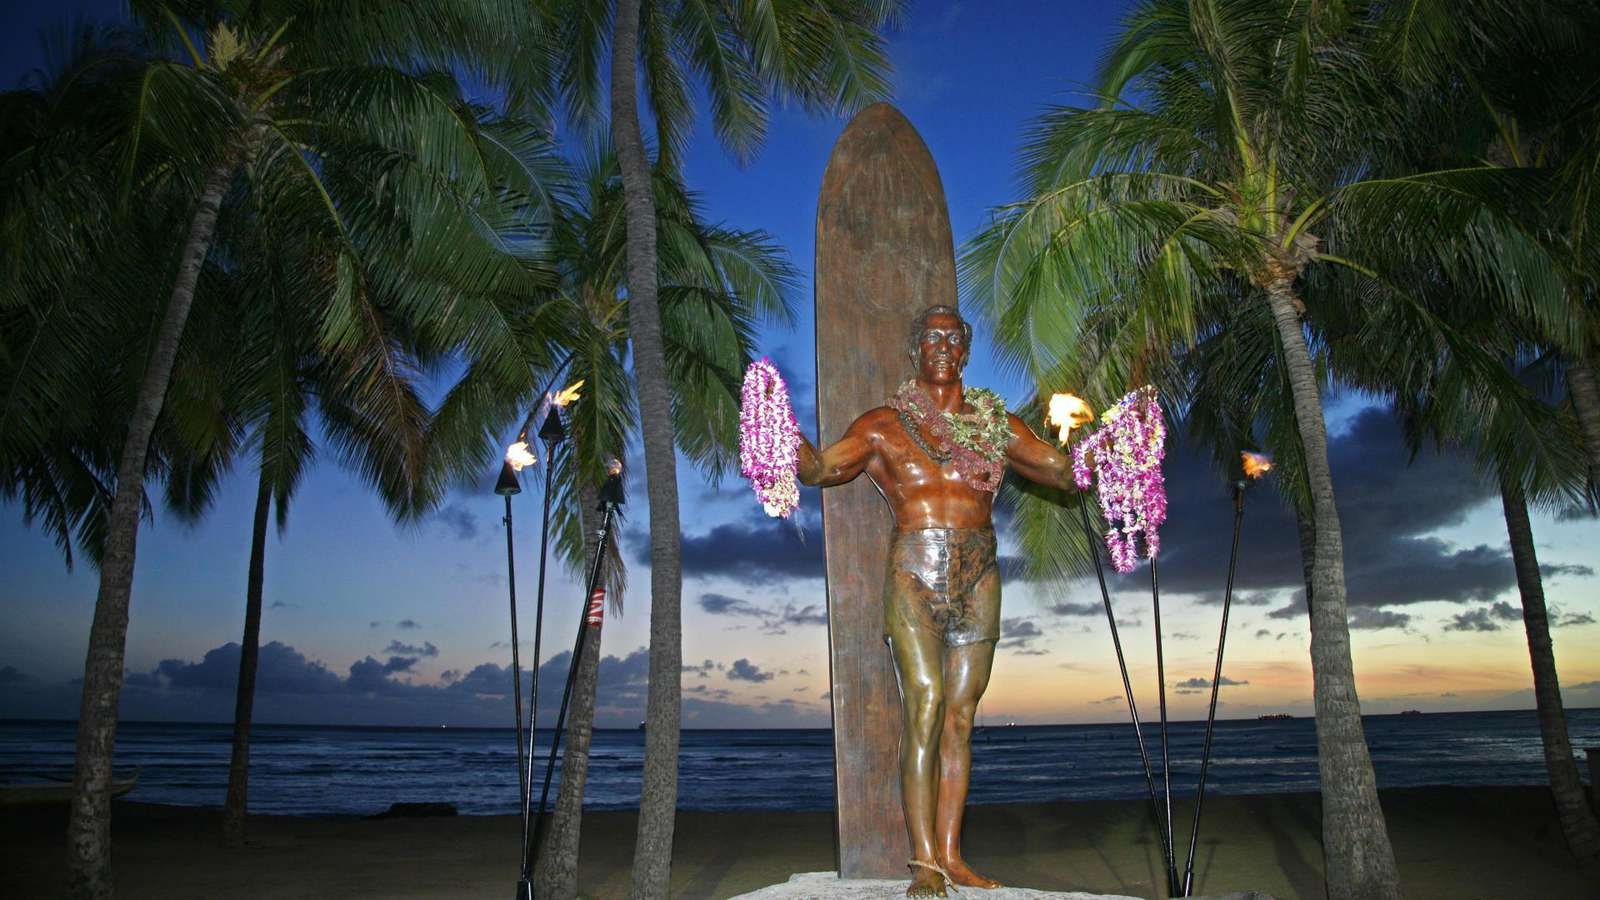 Famous Duke Kahanamoku Statue - just a block away!